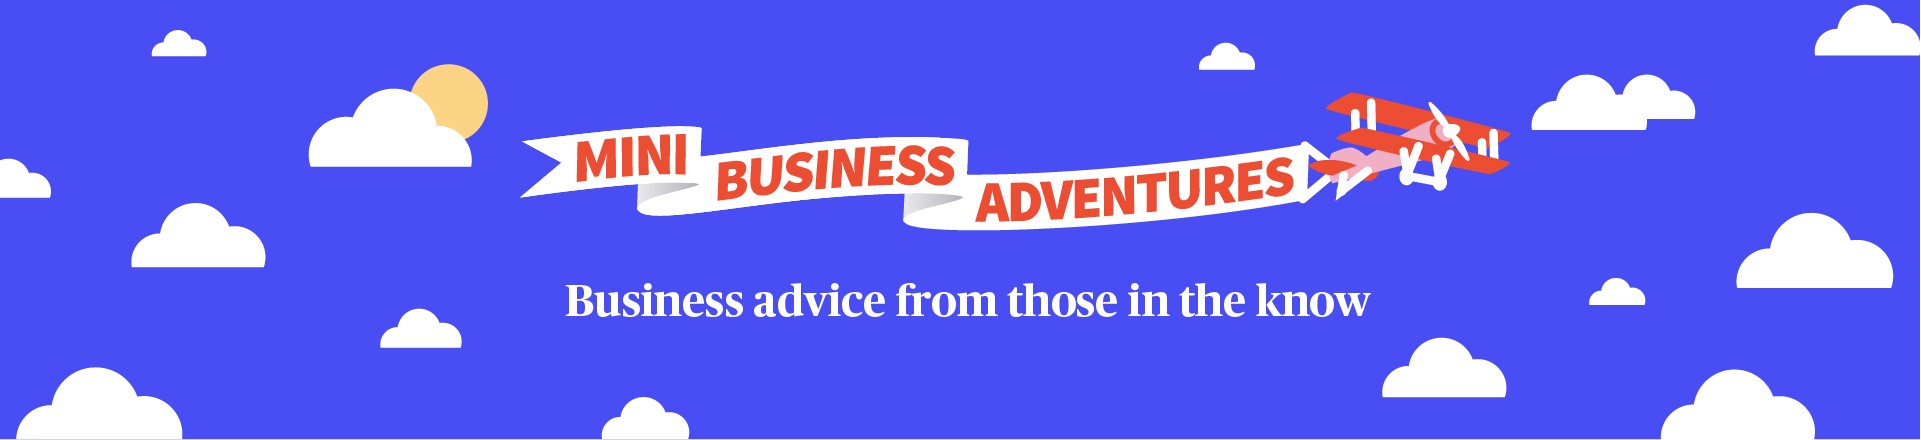 banner_podcastsBusinessAdventures